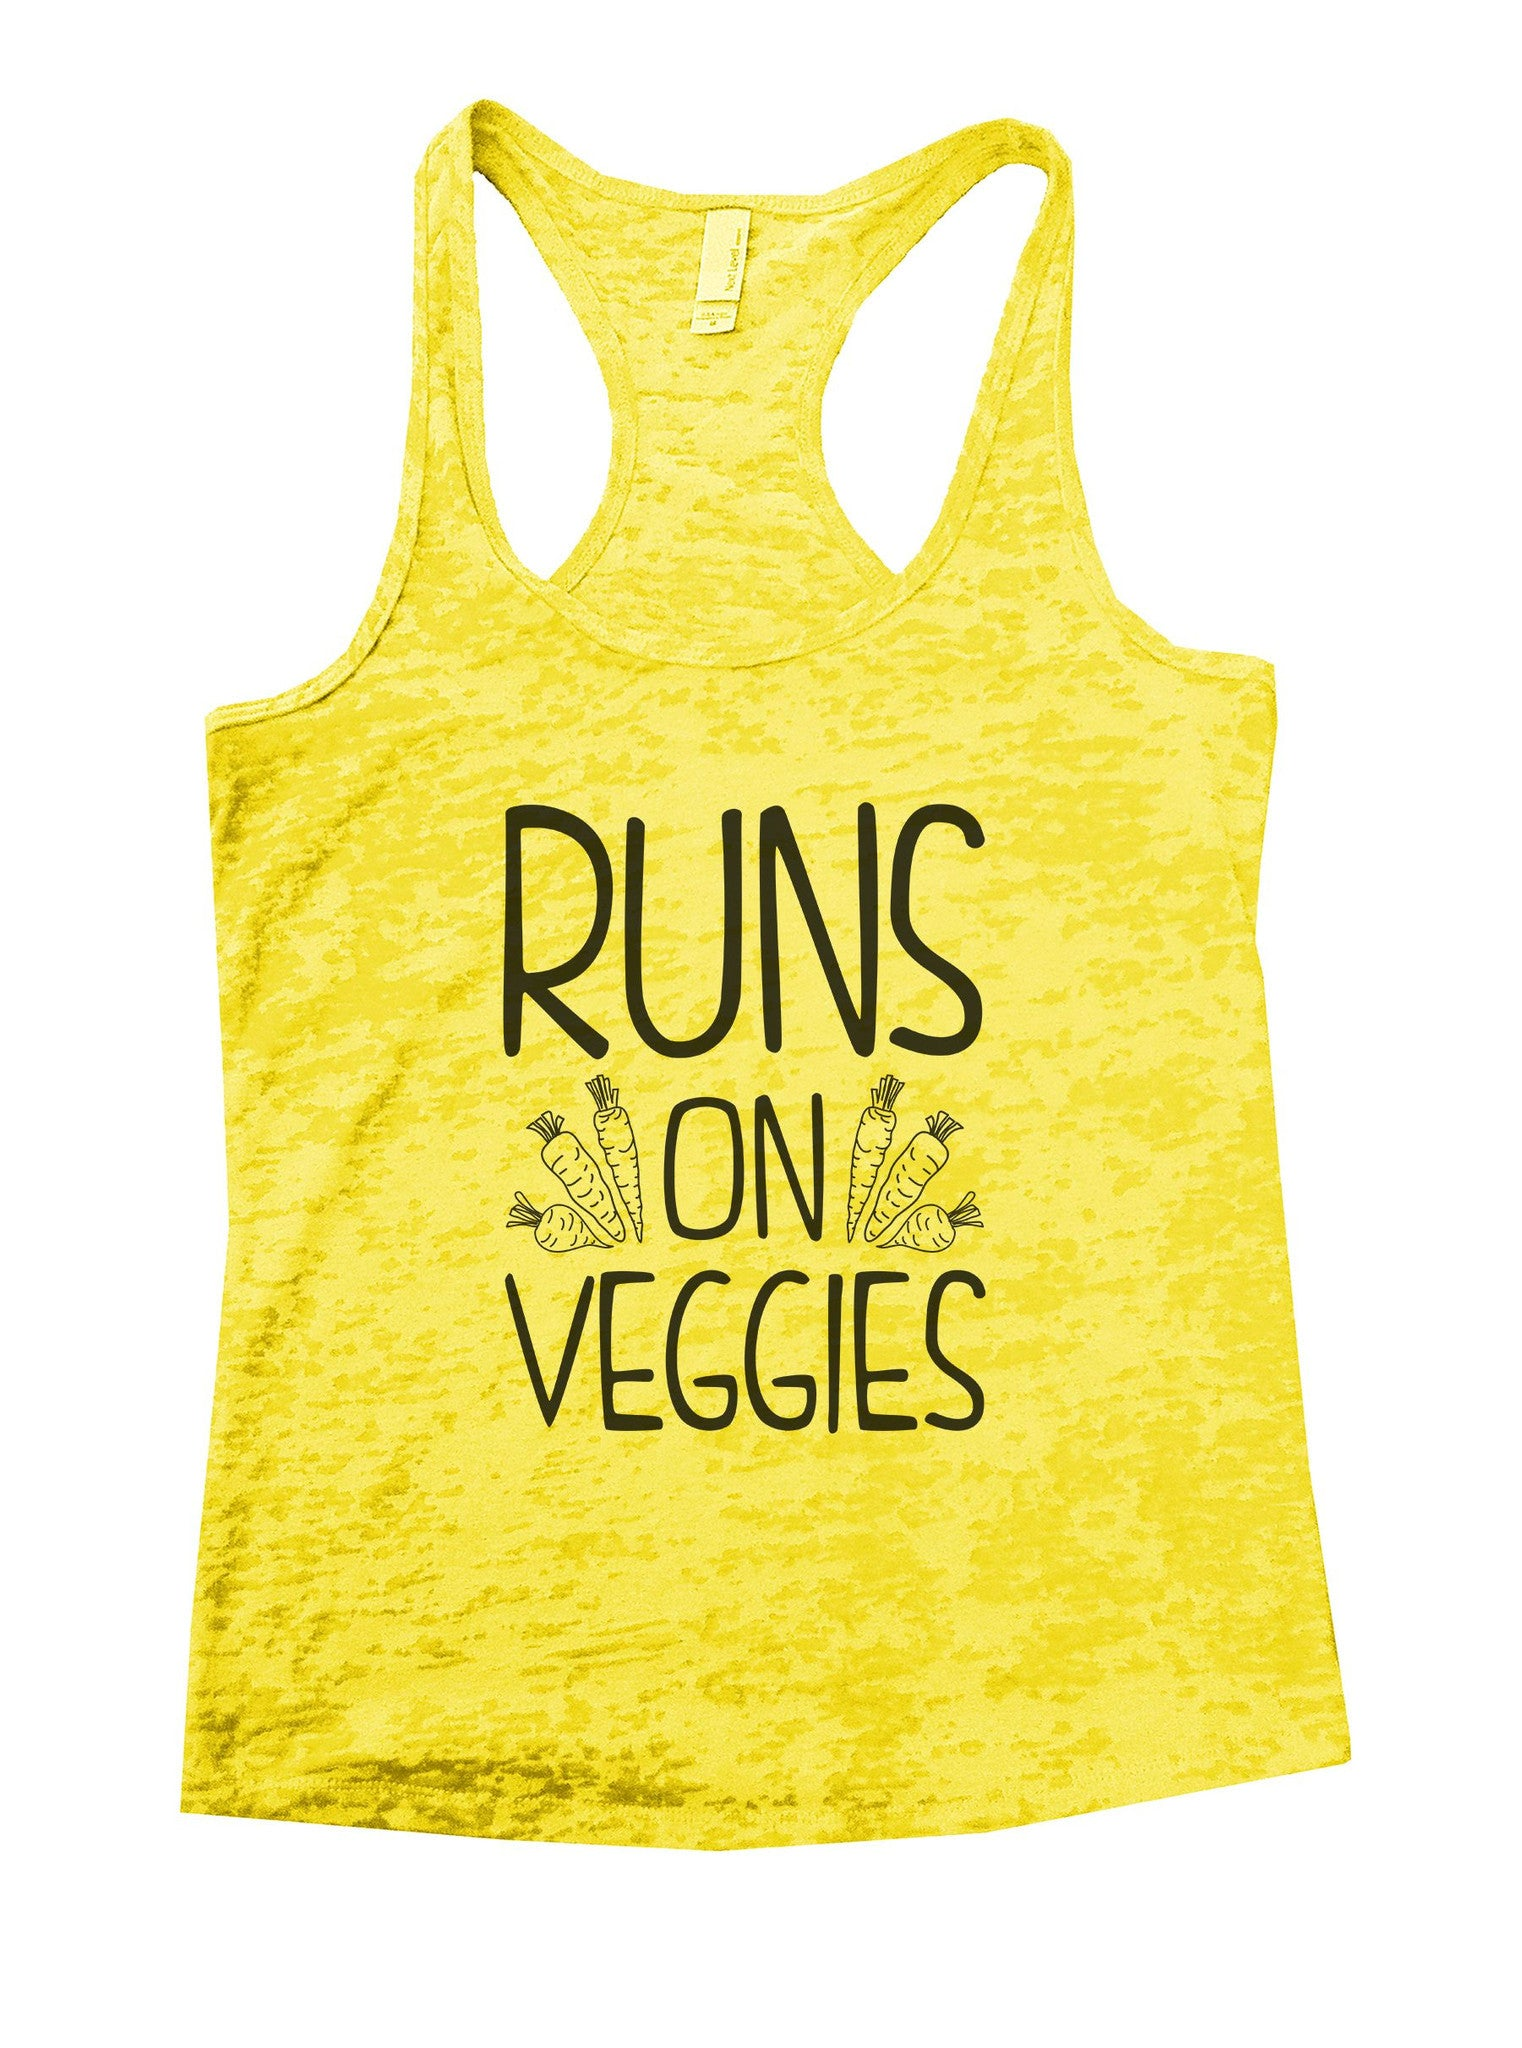 Runs On Veggies Burnout Tank Top By BurnoutTankTops.com - 1074 - Funny Shirts Tank Tops Burnouts and Triblends  - 7